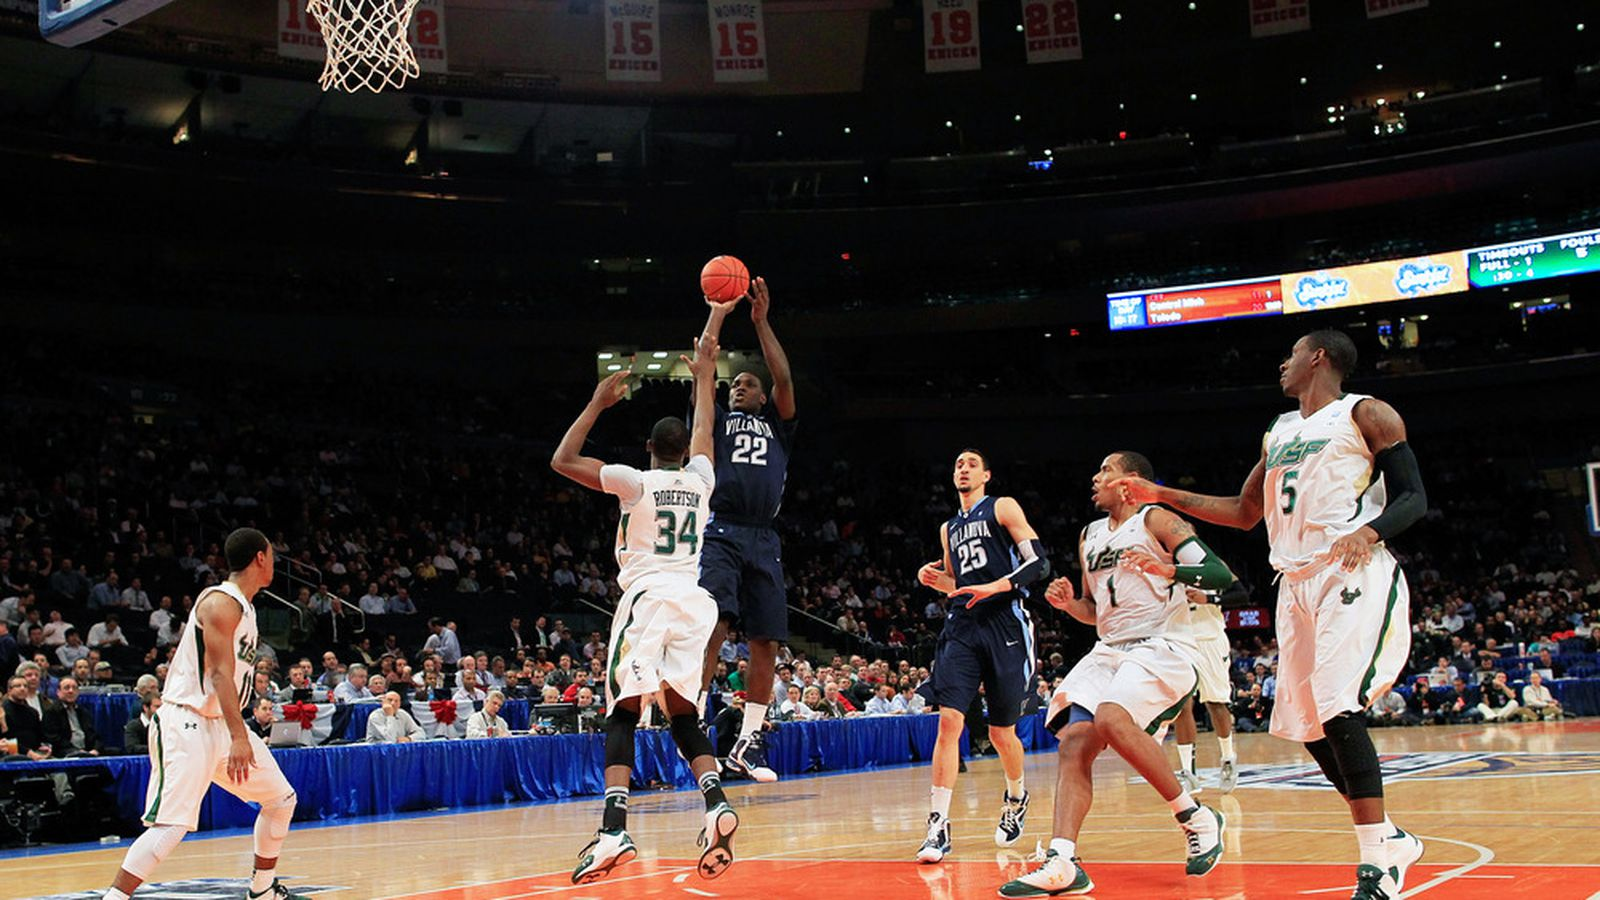 Big East To Host 2014 Ncaa Tournament At Msg Vu Hoops: madison square garden basketball